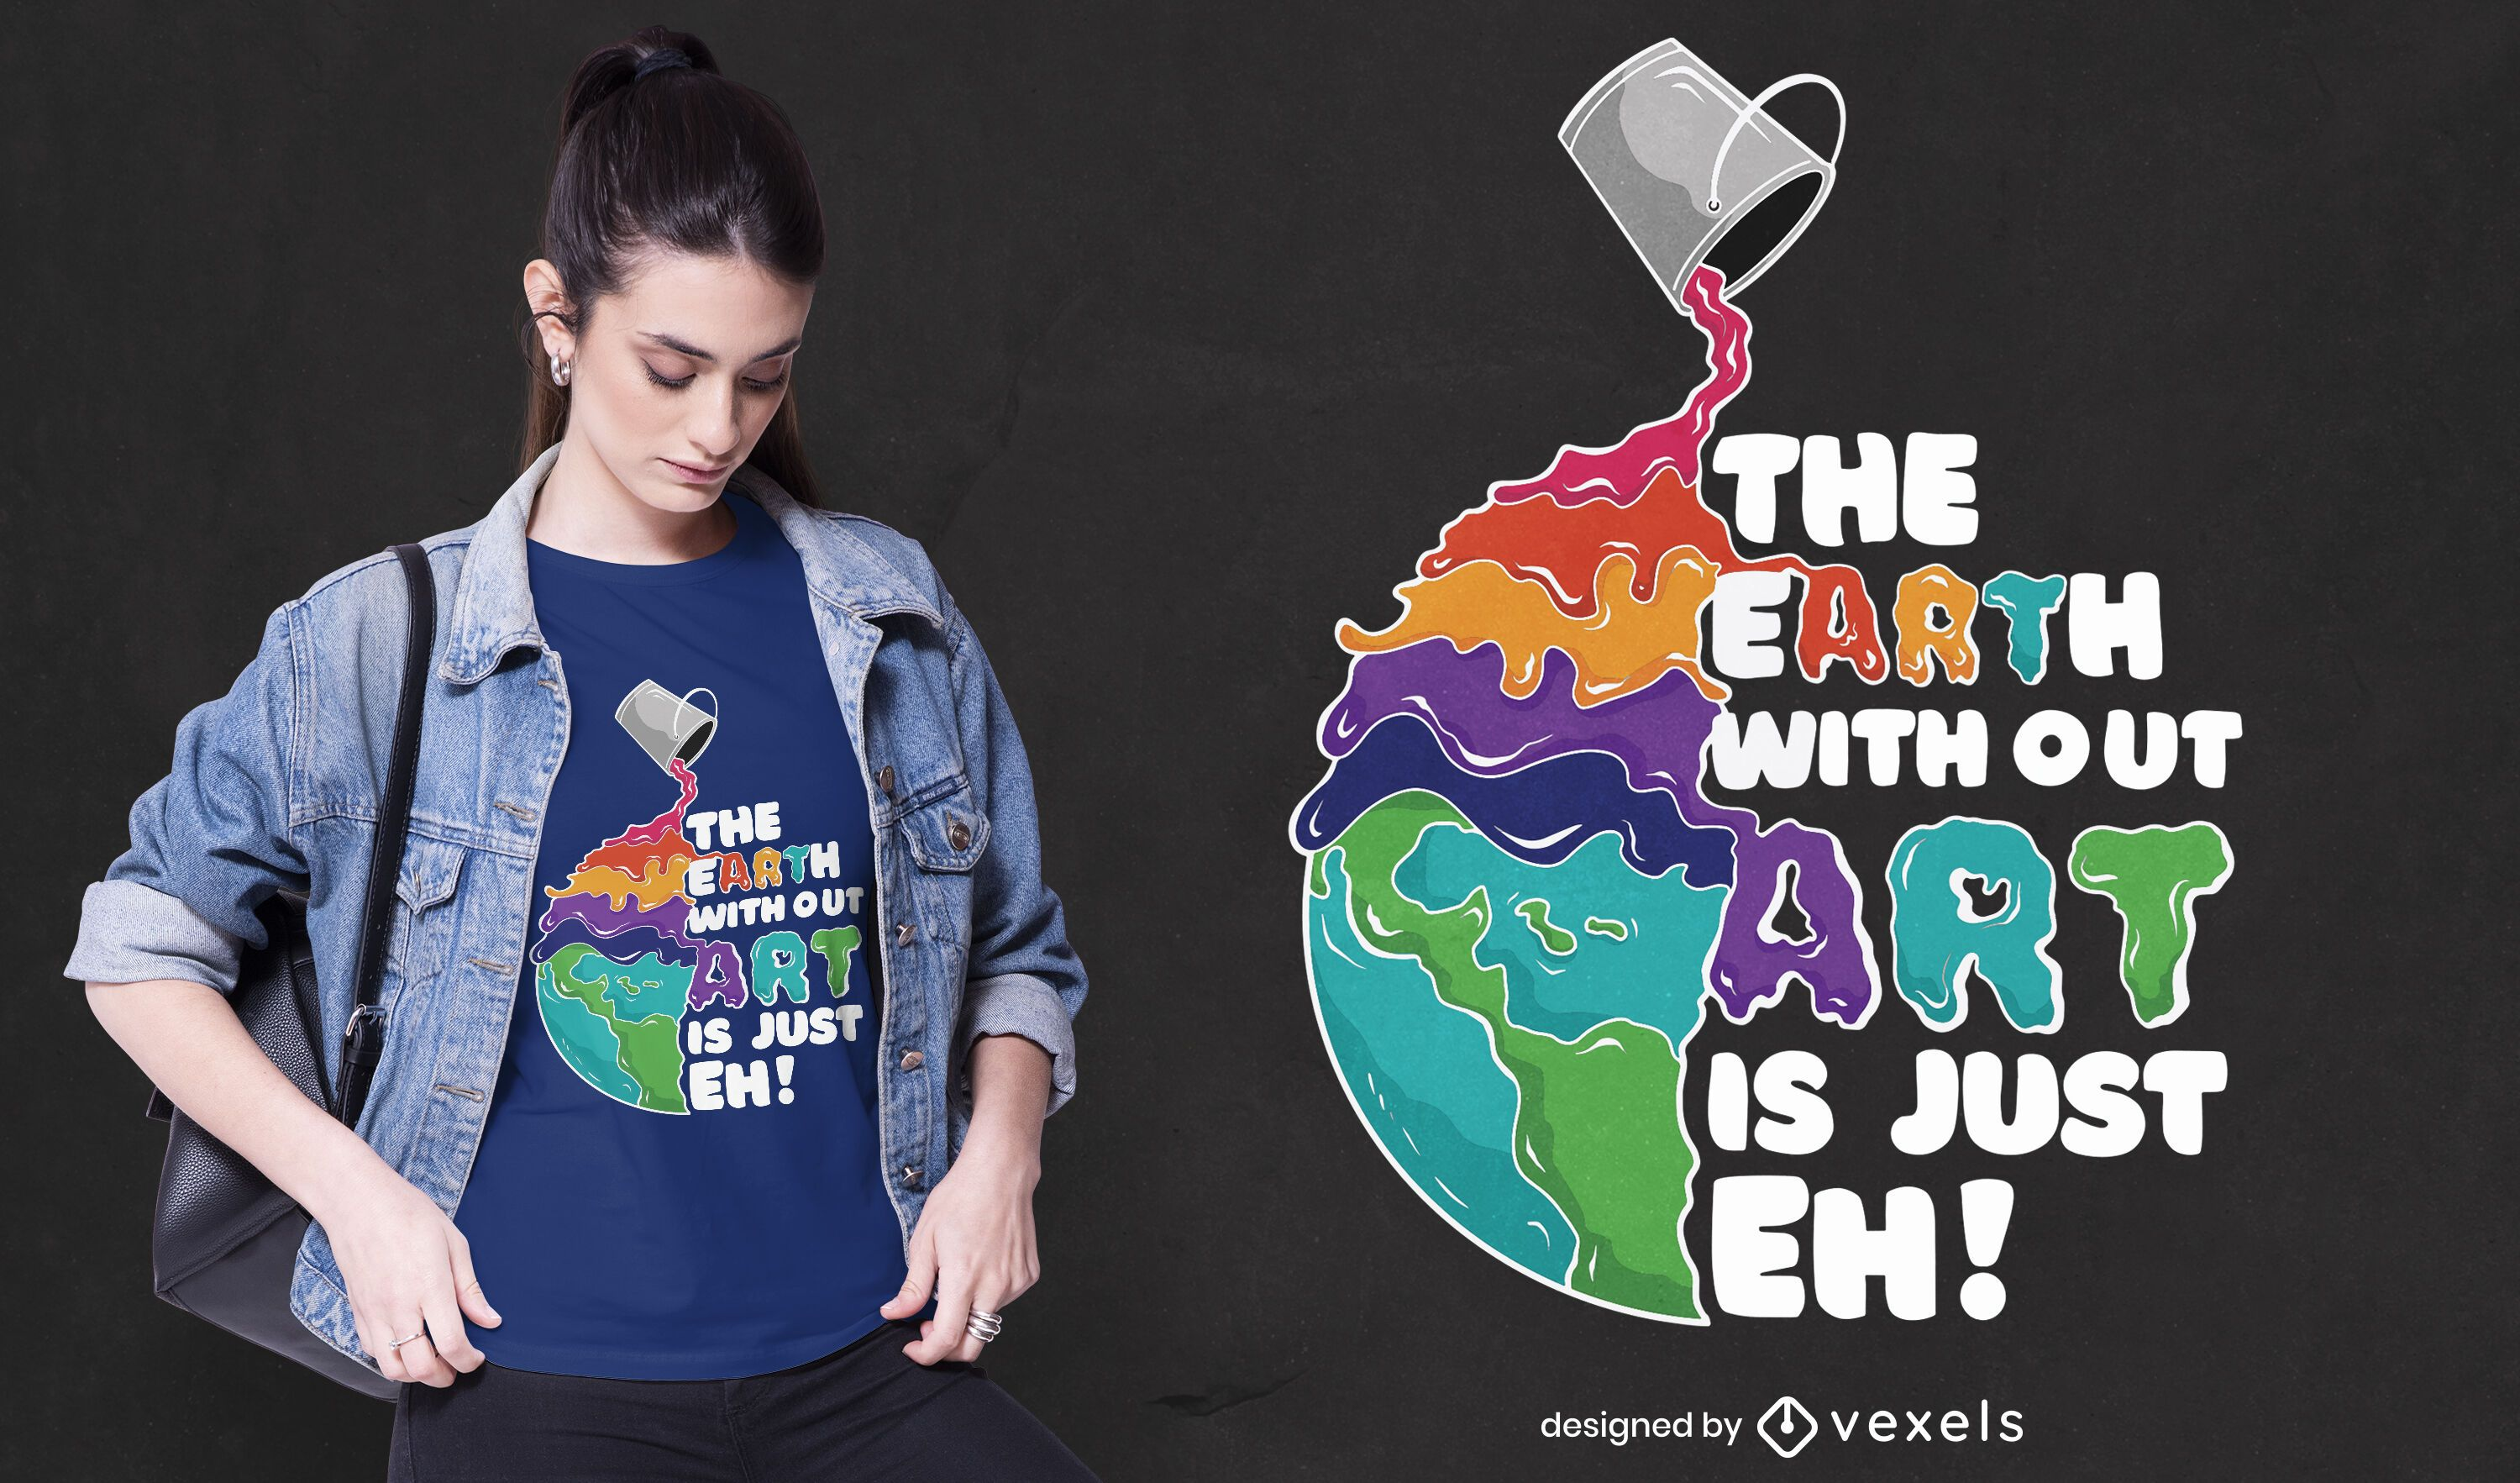 Earth without art t-shirt design